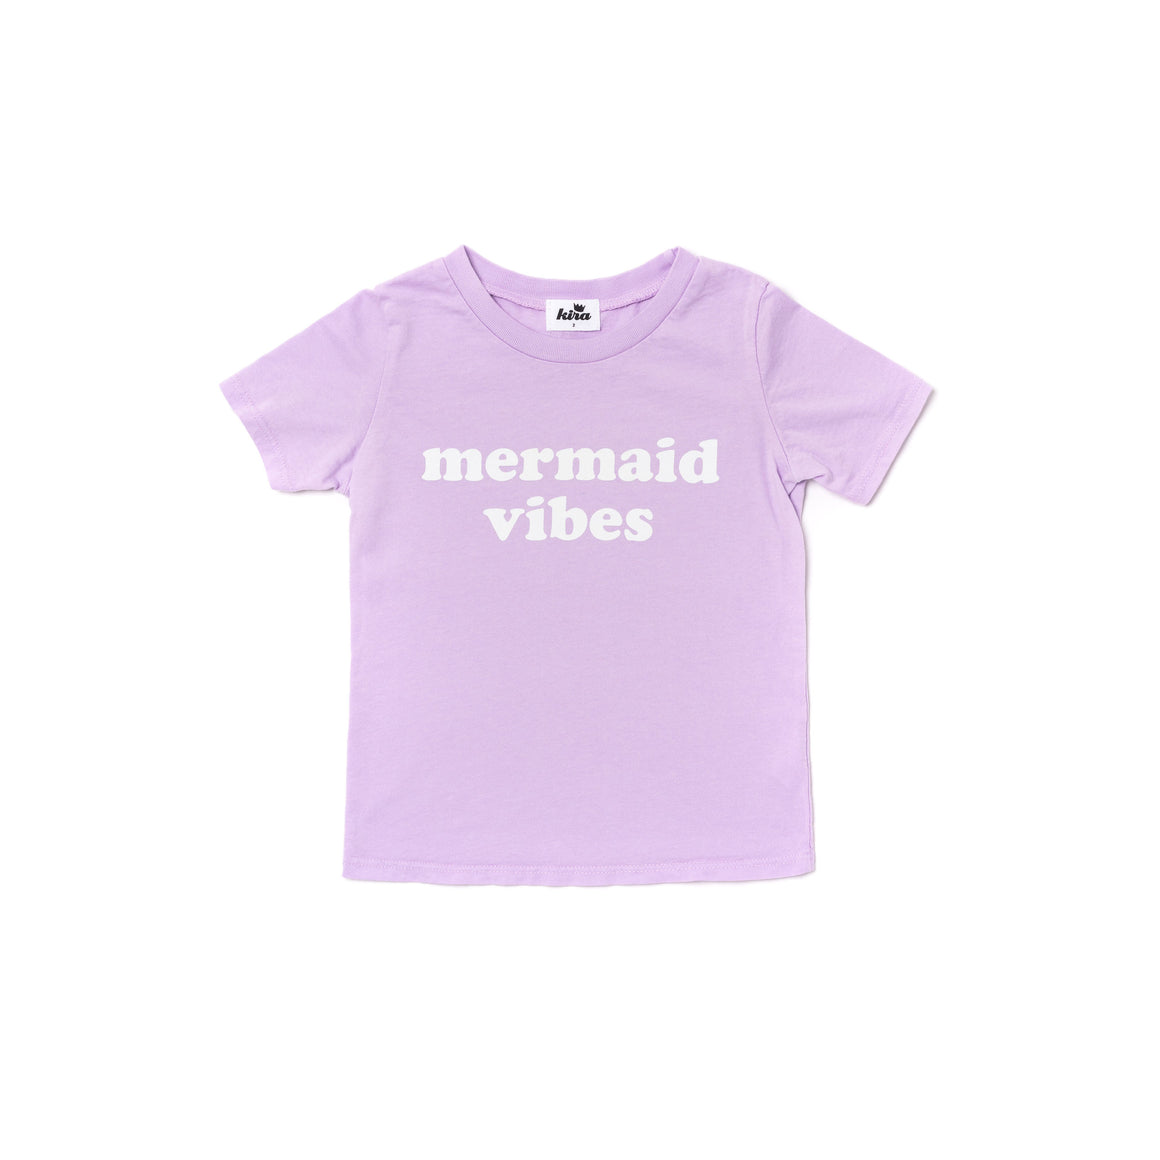 Mermaid Vibes Graphic Short Sleeve T-shirt, Pastel Violet